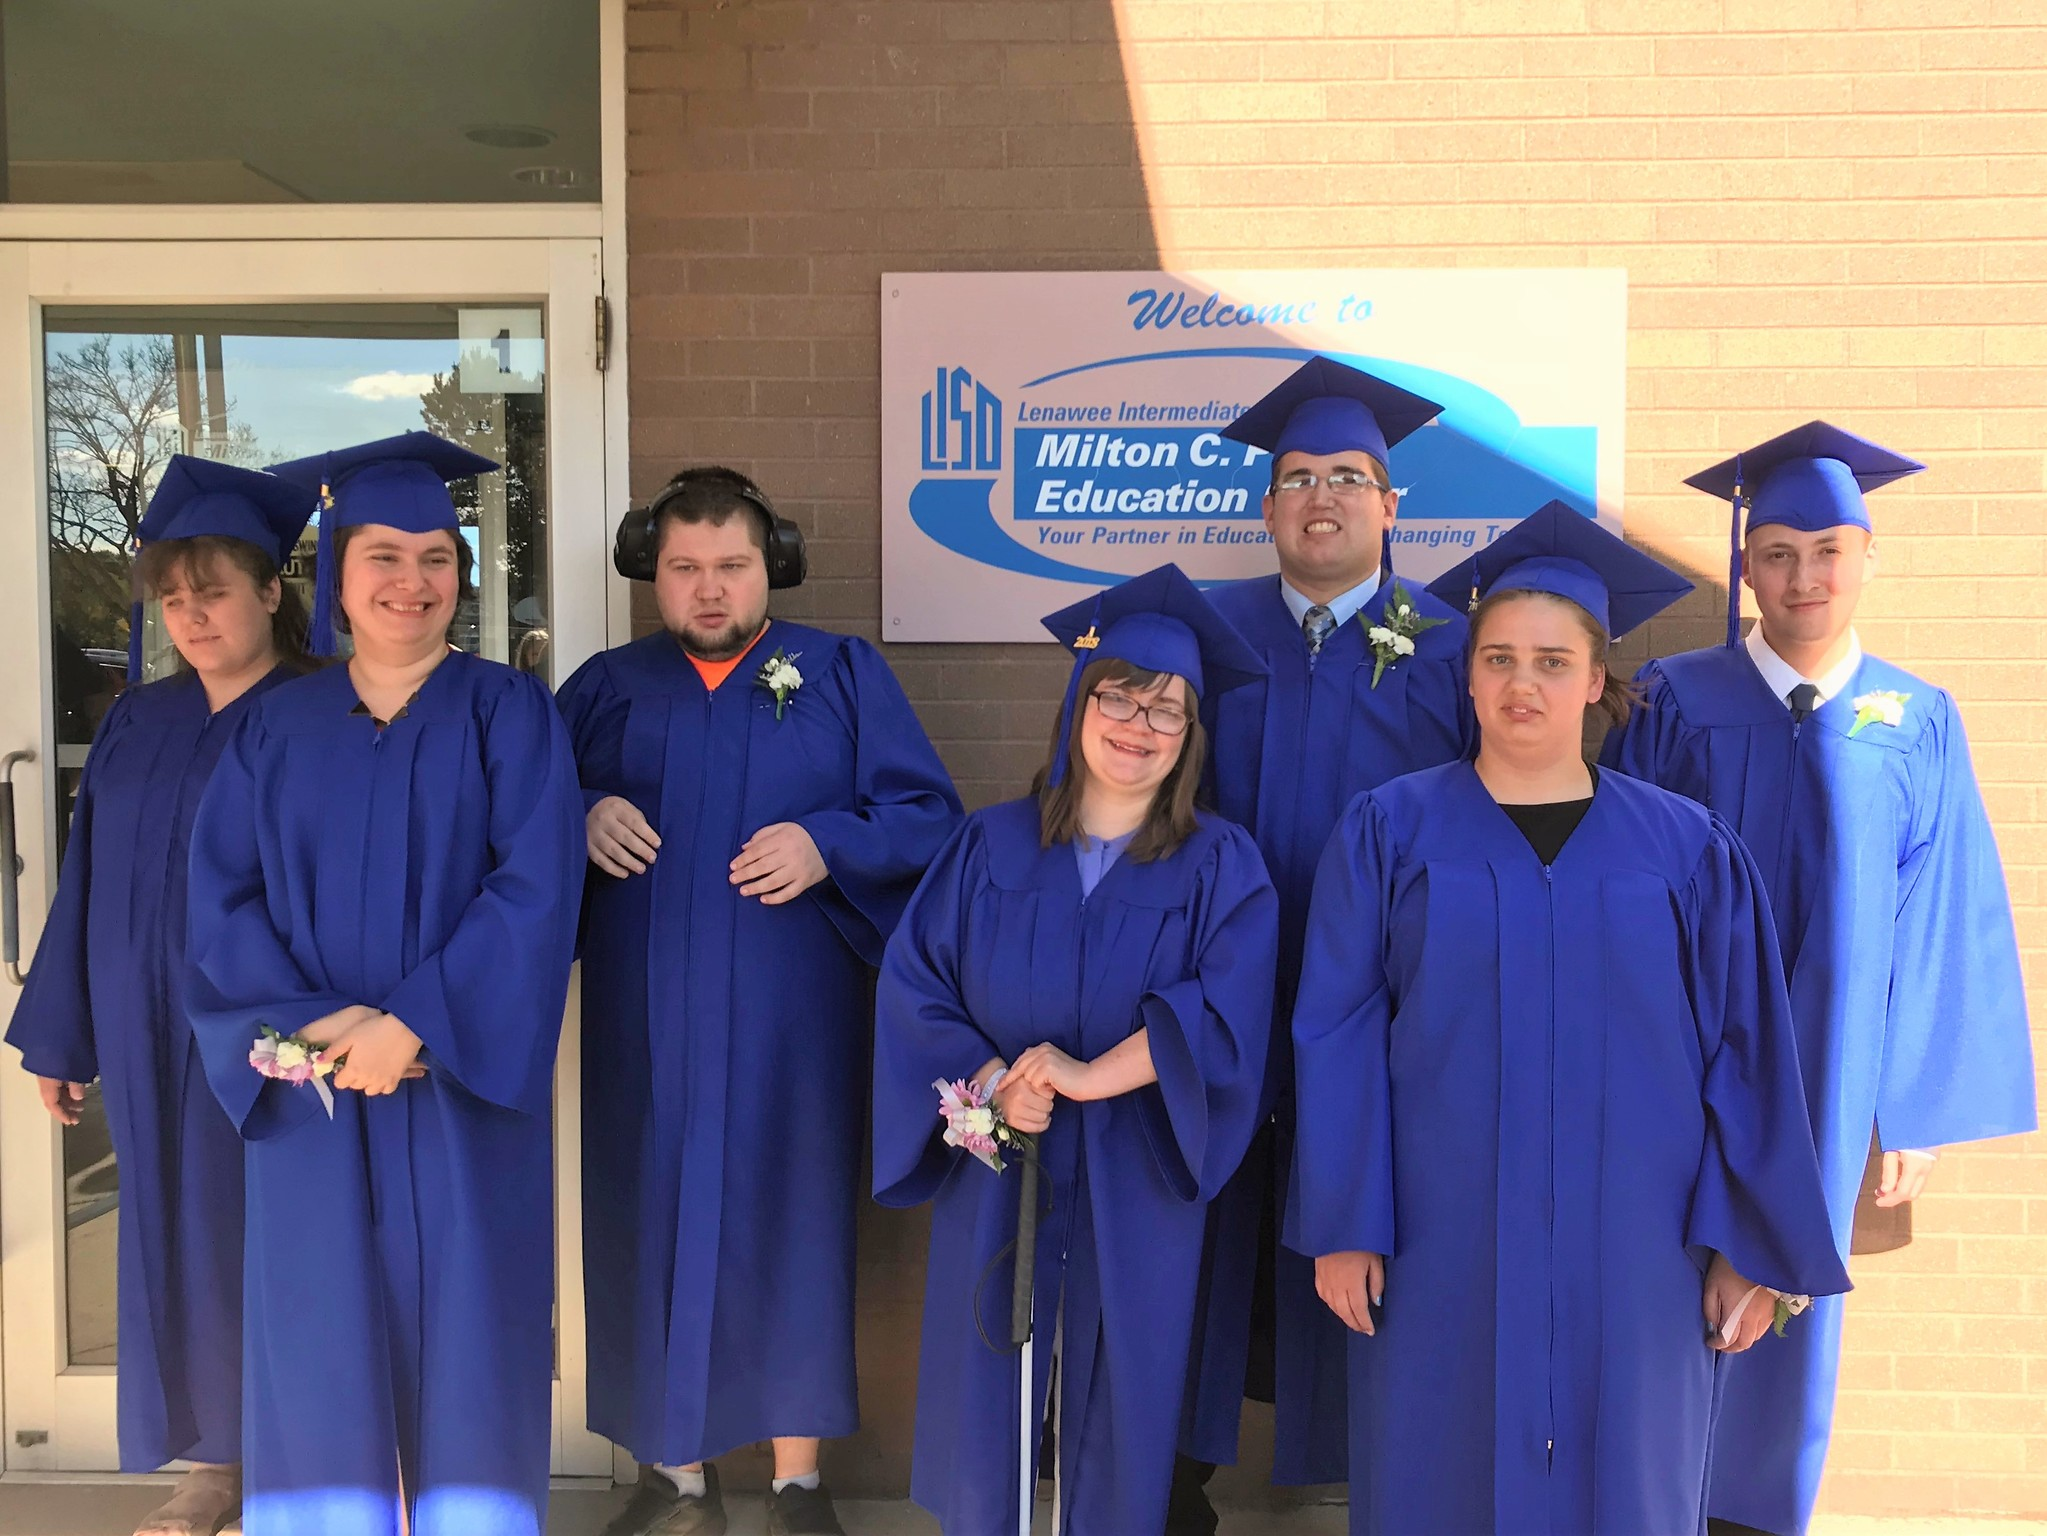 Special Education graduating seniors in gowns